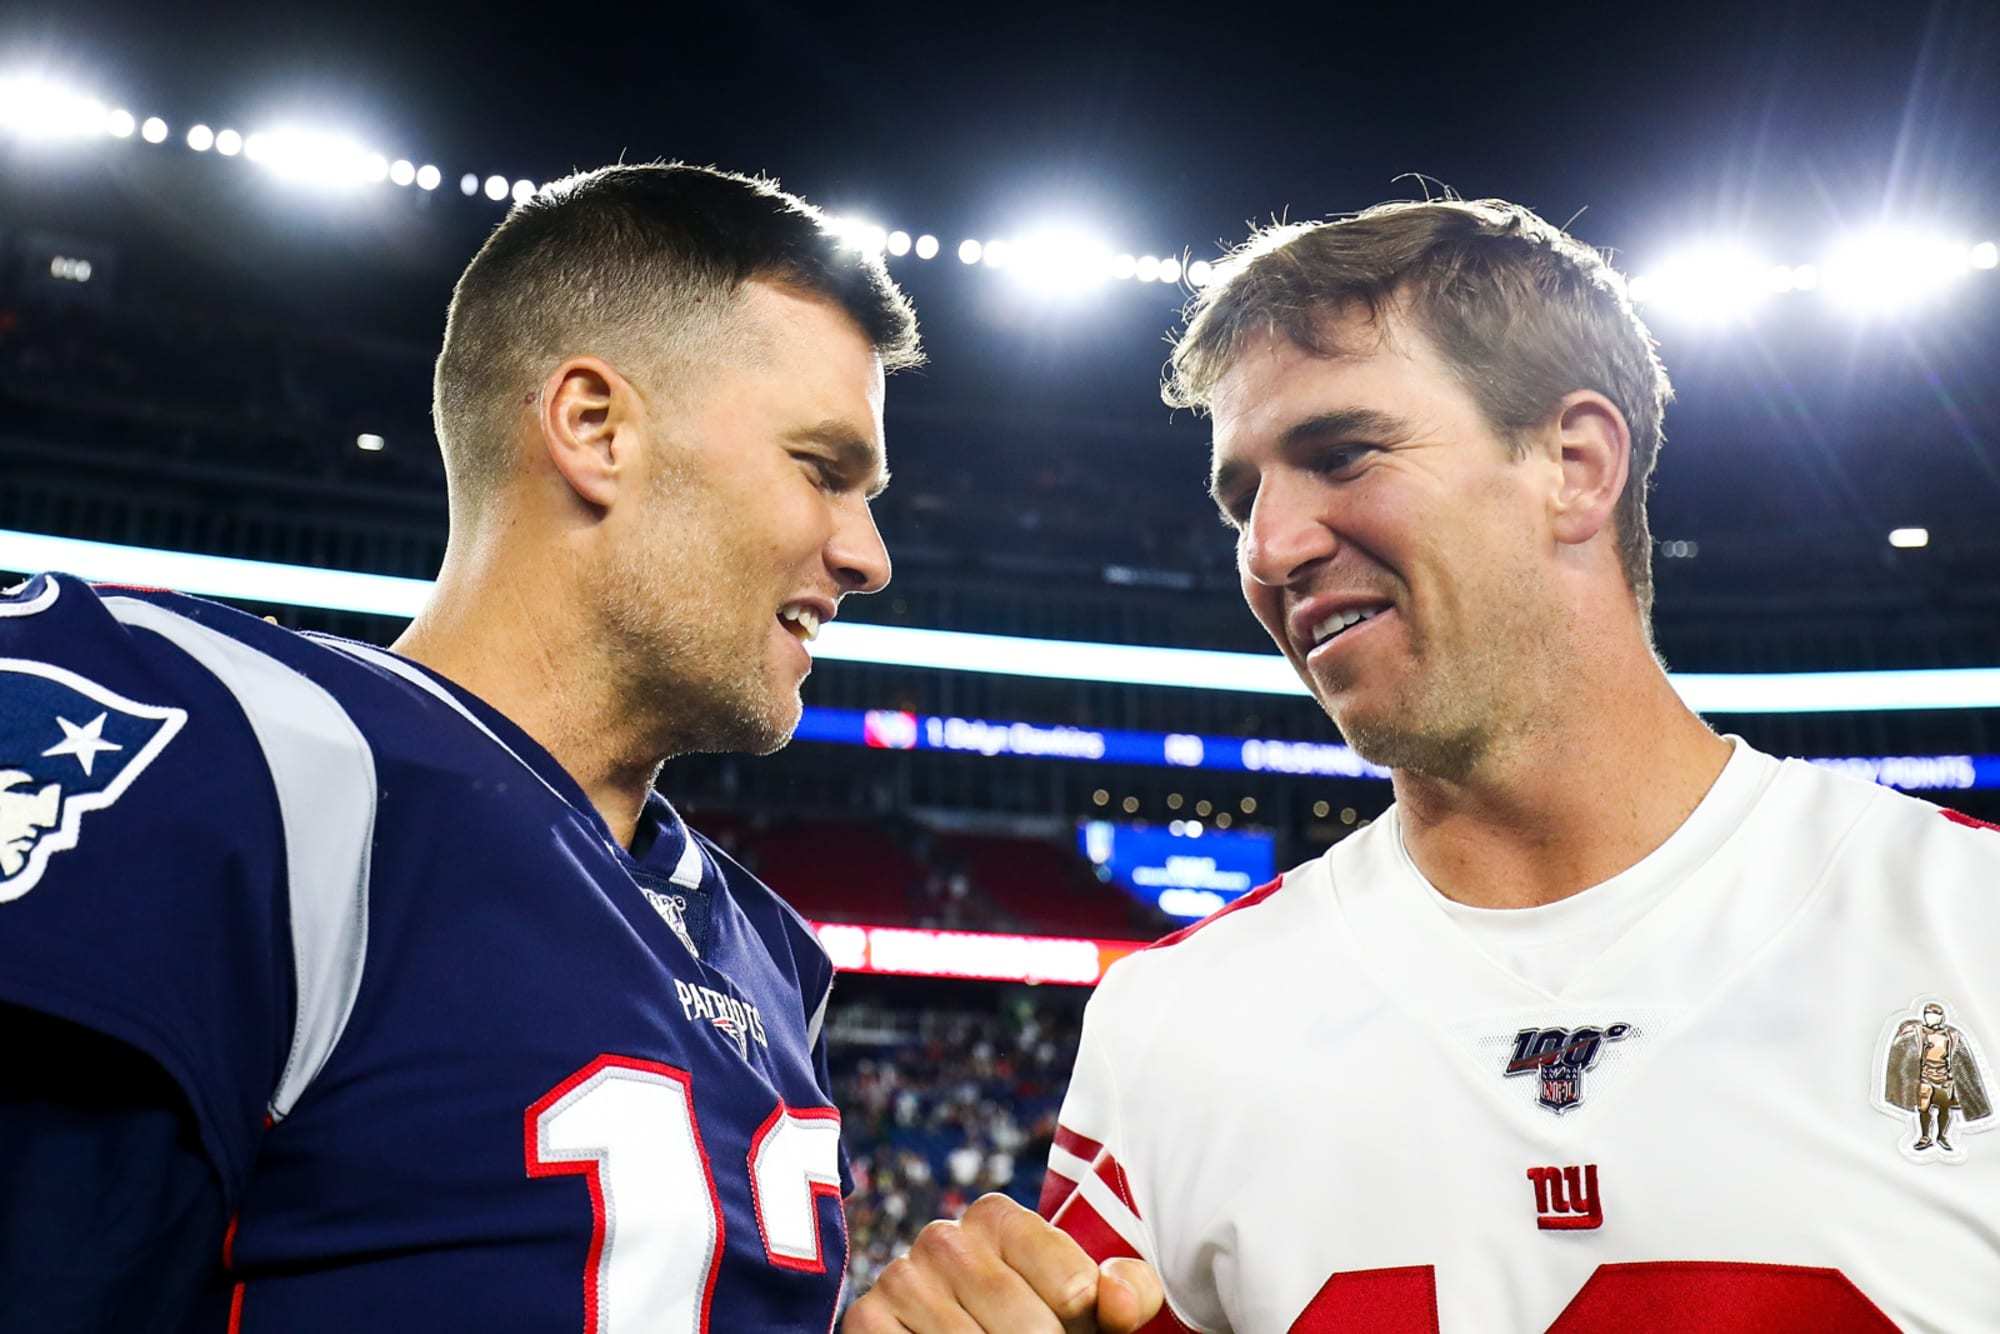 Watch: Tom Brady got roasted by Eli on Manningcast for Super Bowl losses